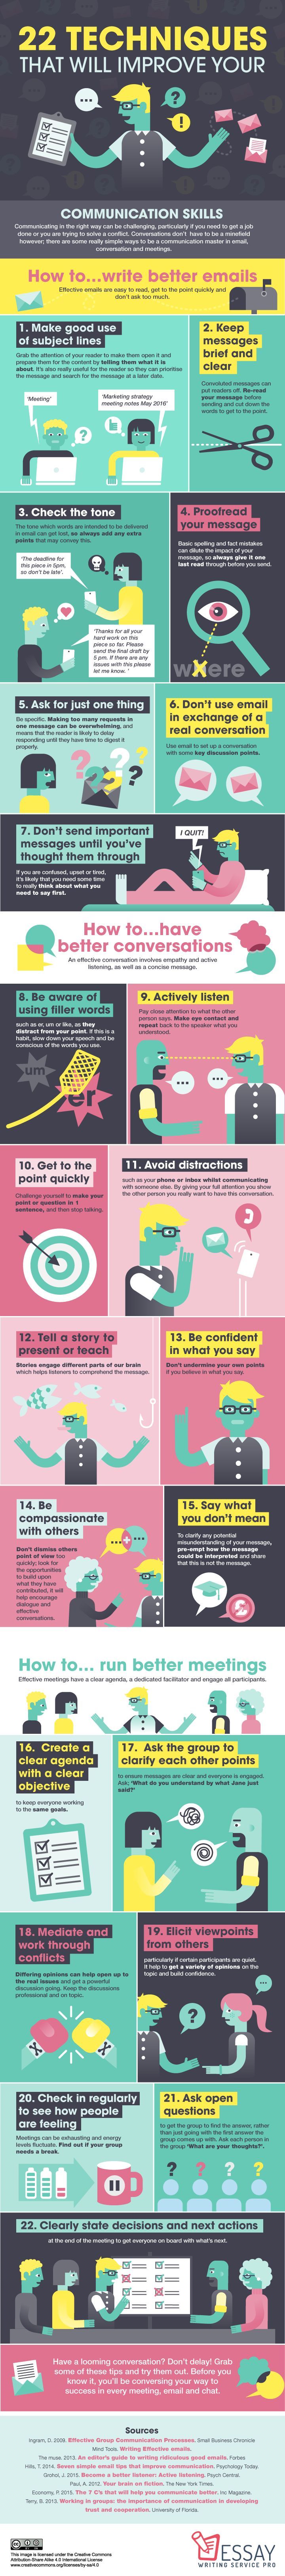 Top 22 Techniques To Improve Your Communication Skills And Become A Great Communicator: Infogrtaphic